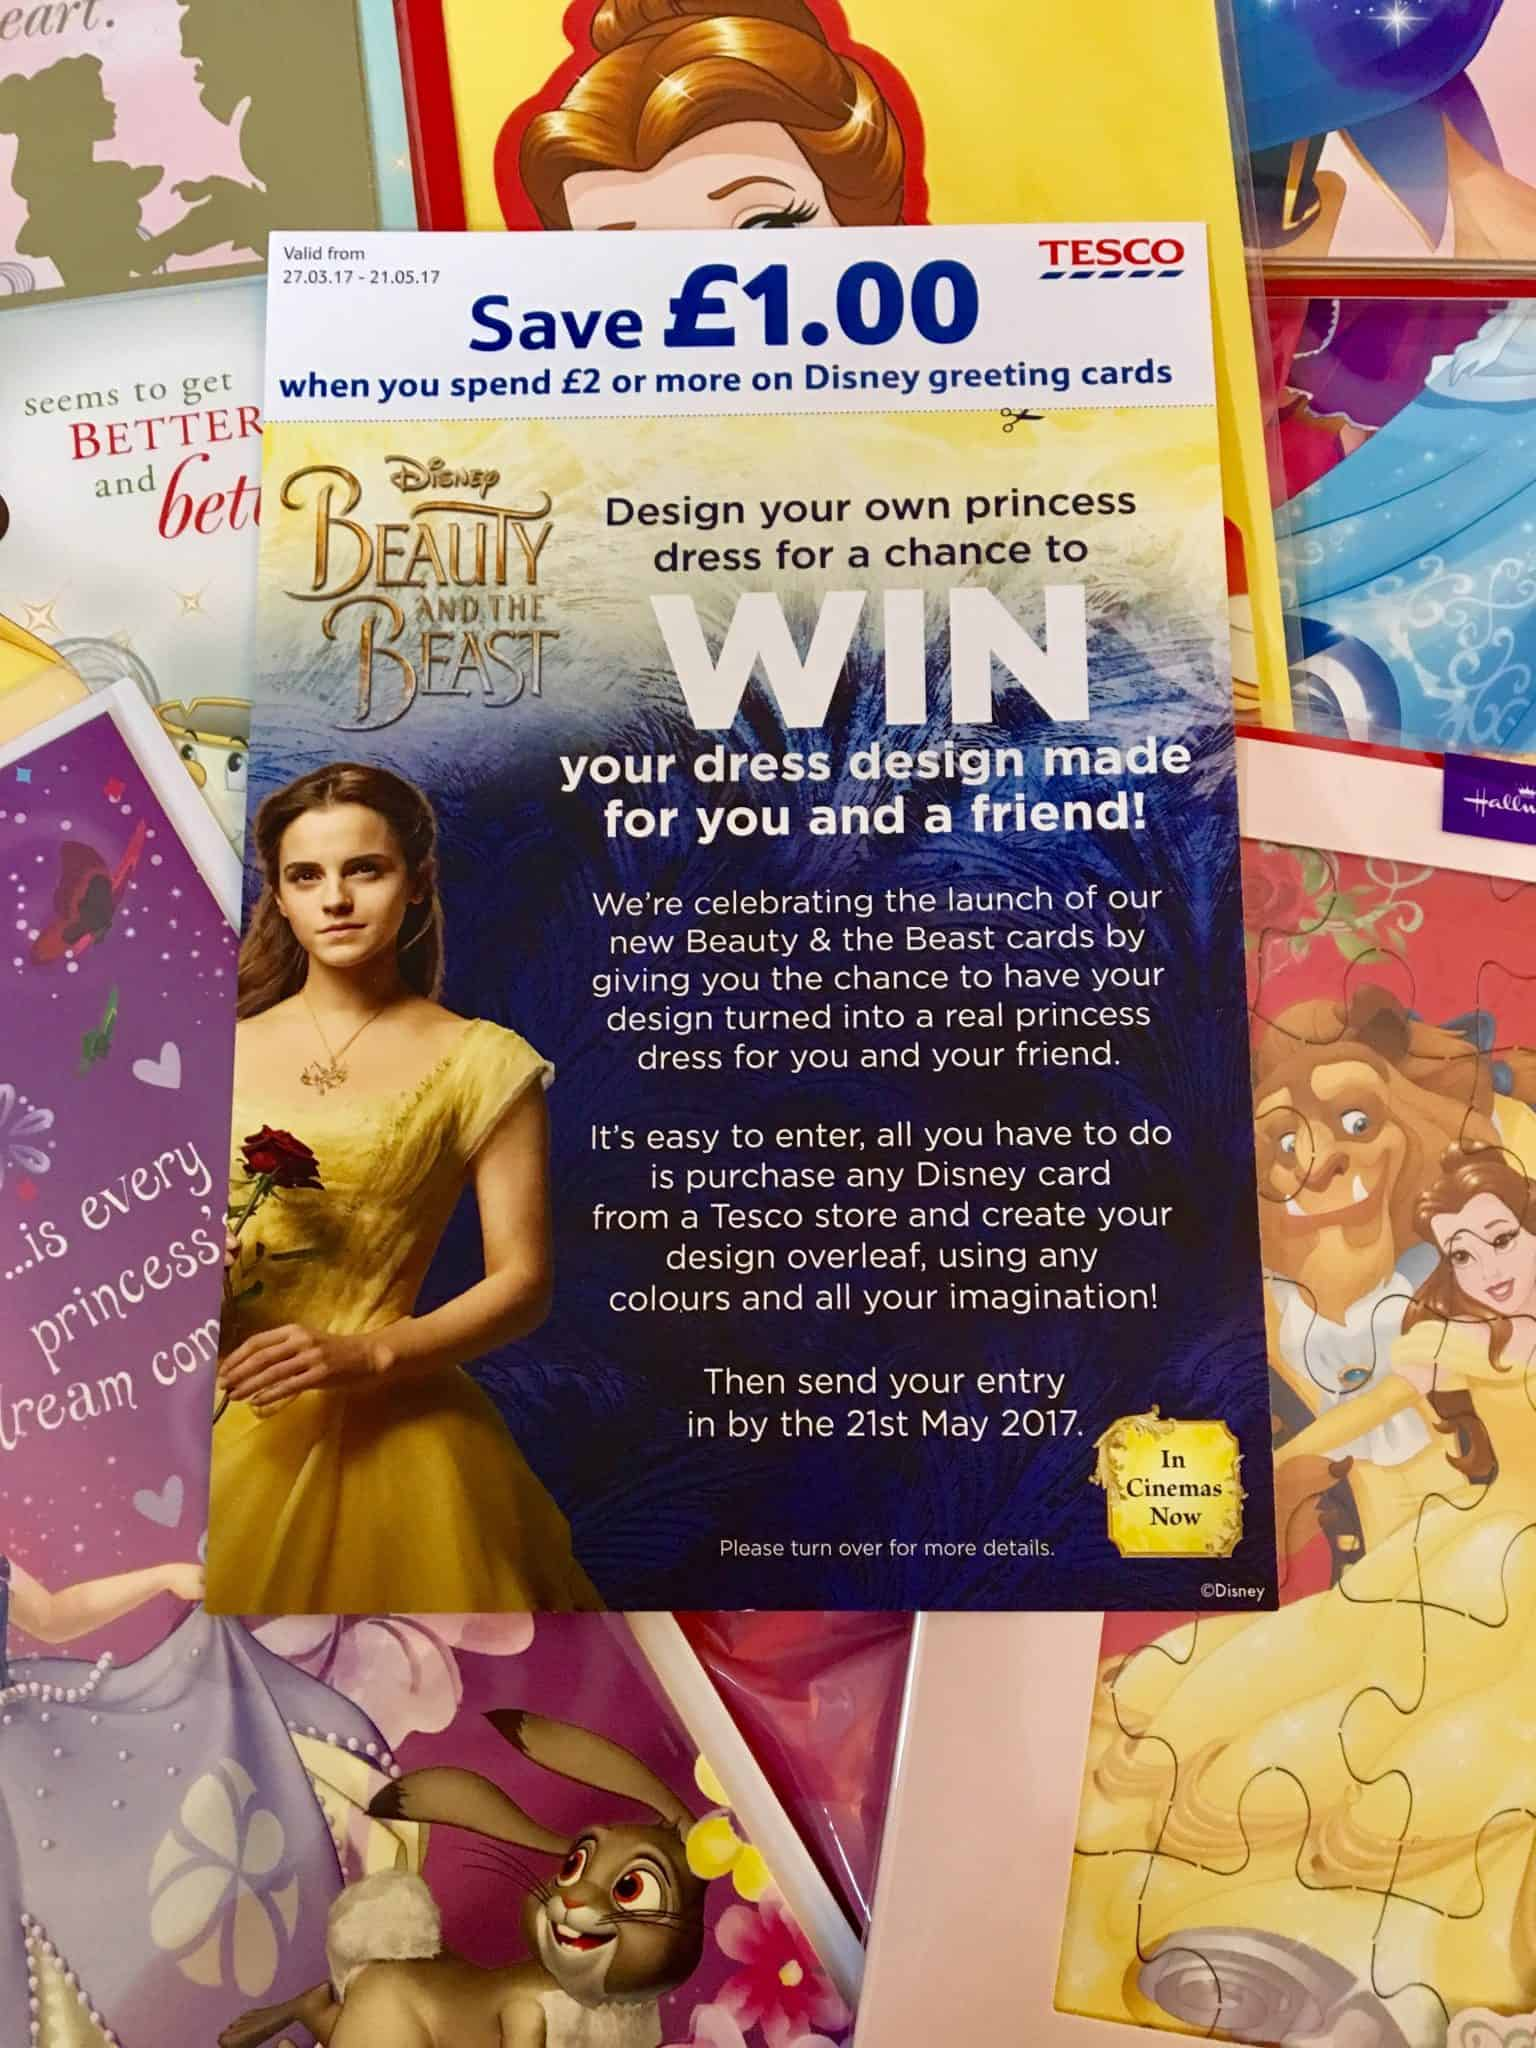 Beauty and the Beast design a princess dress for you and a friend